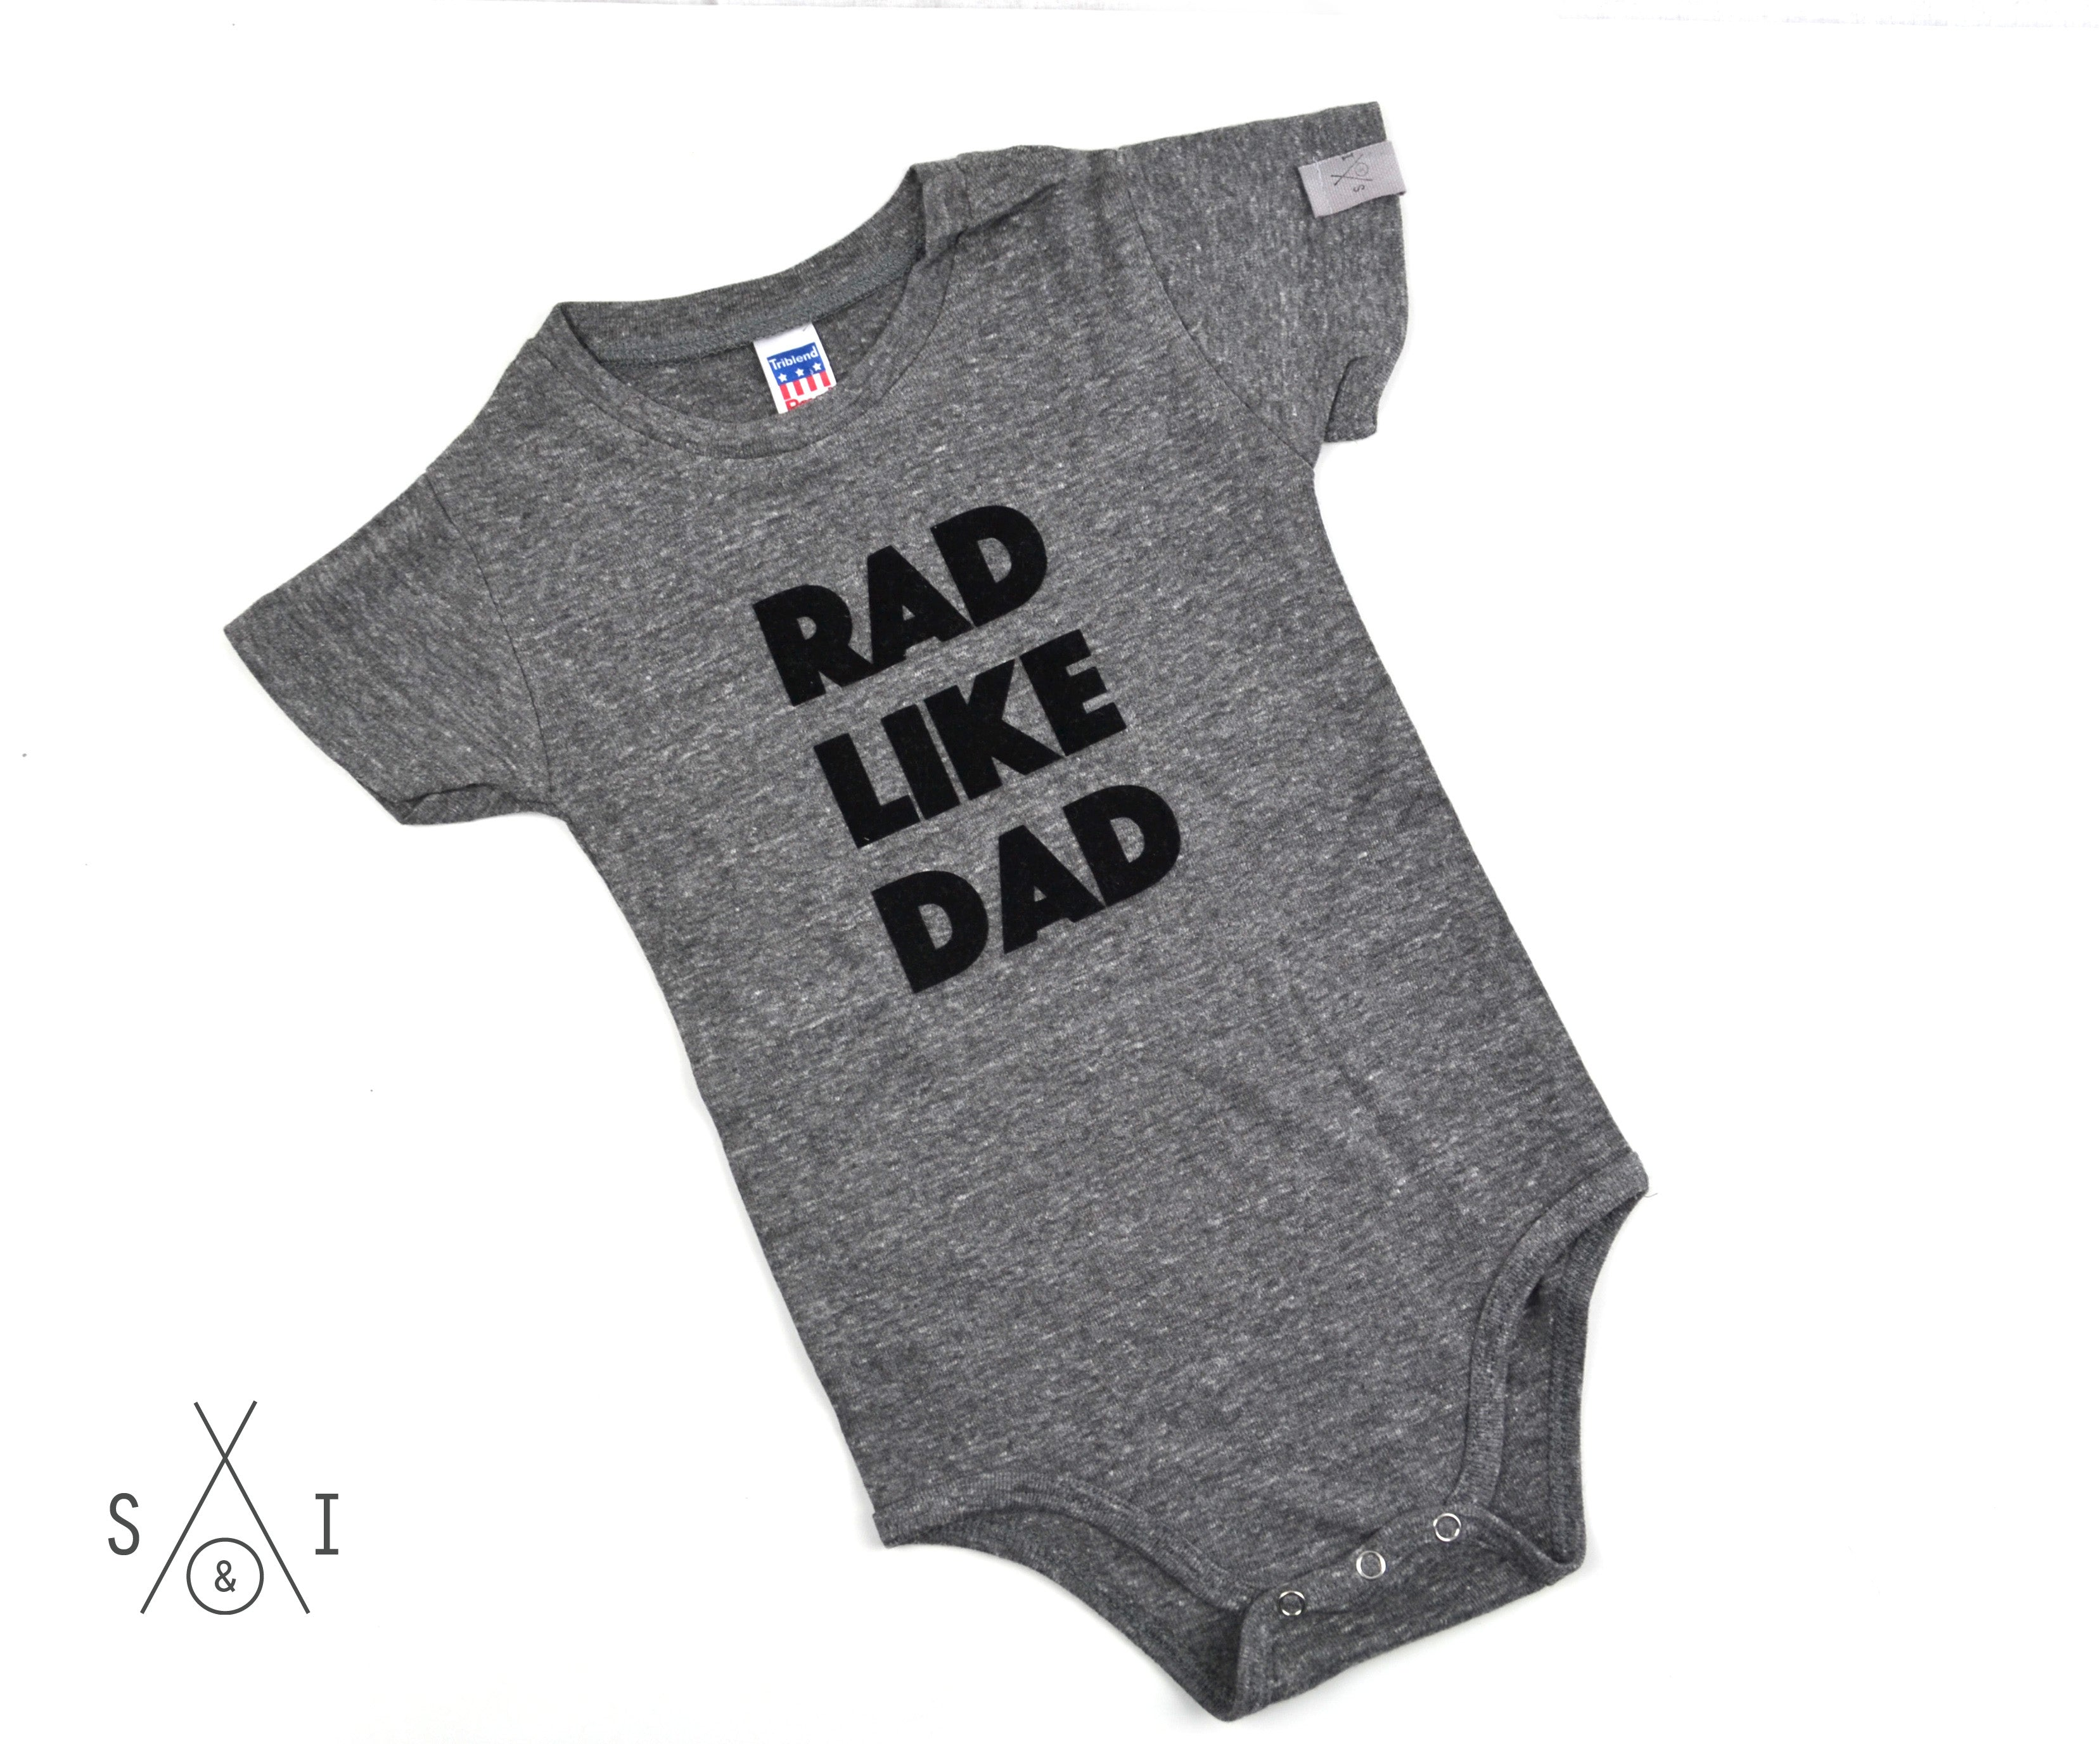 rad like dad  baby one piece: regular letters